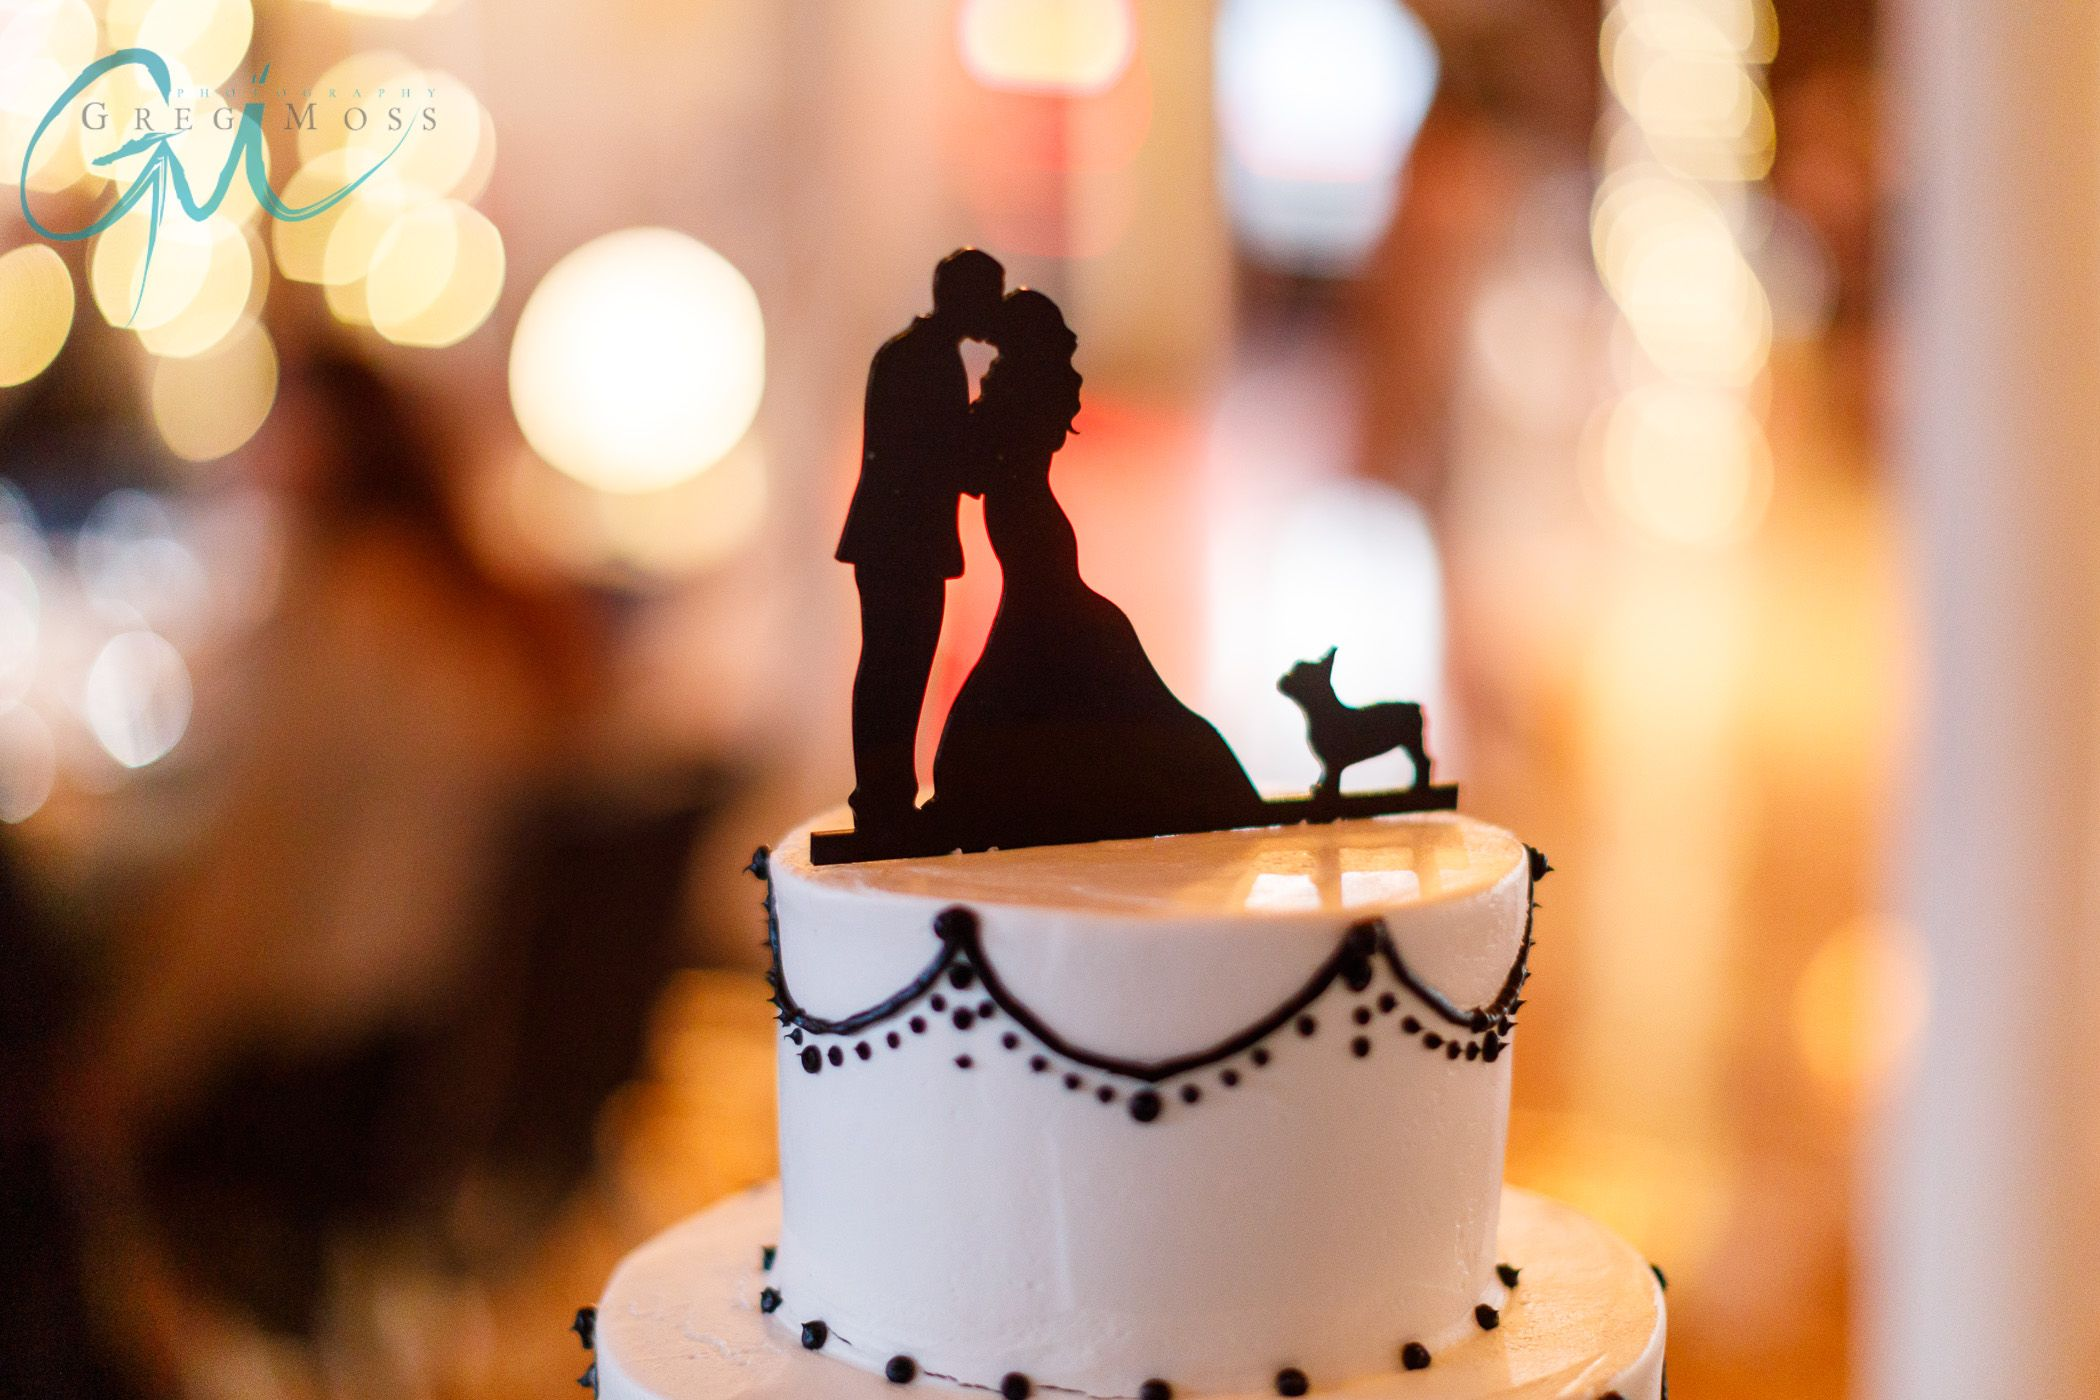 Image by greg moss photography of d u mus custom cake topper that